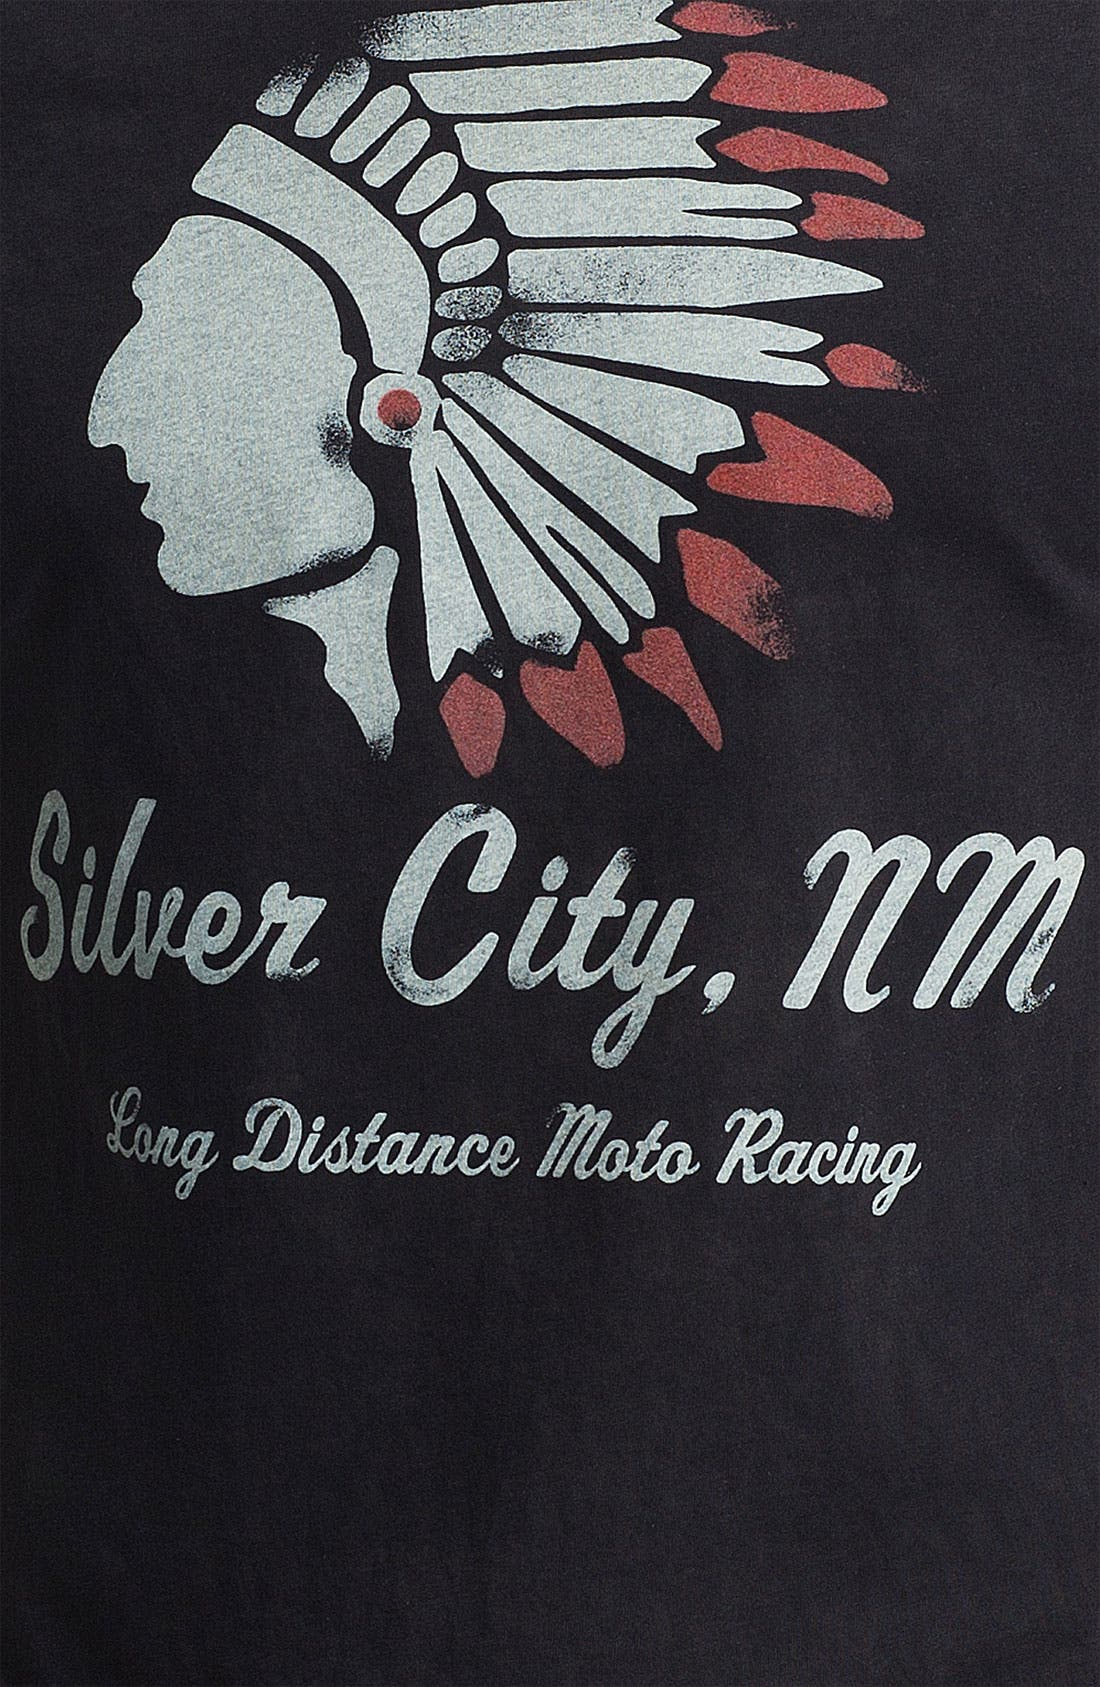 'Silver City, NM' Graphic T-Shirt,                             Alternate thumbnail 3, color,                             001